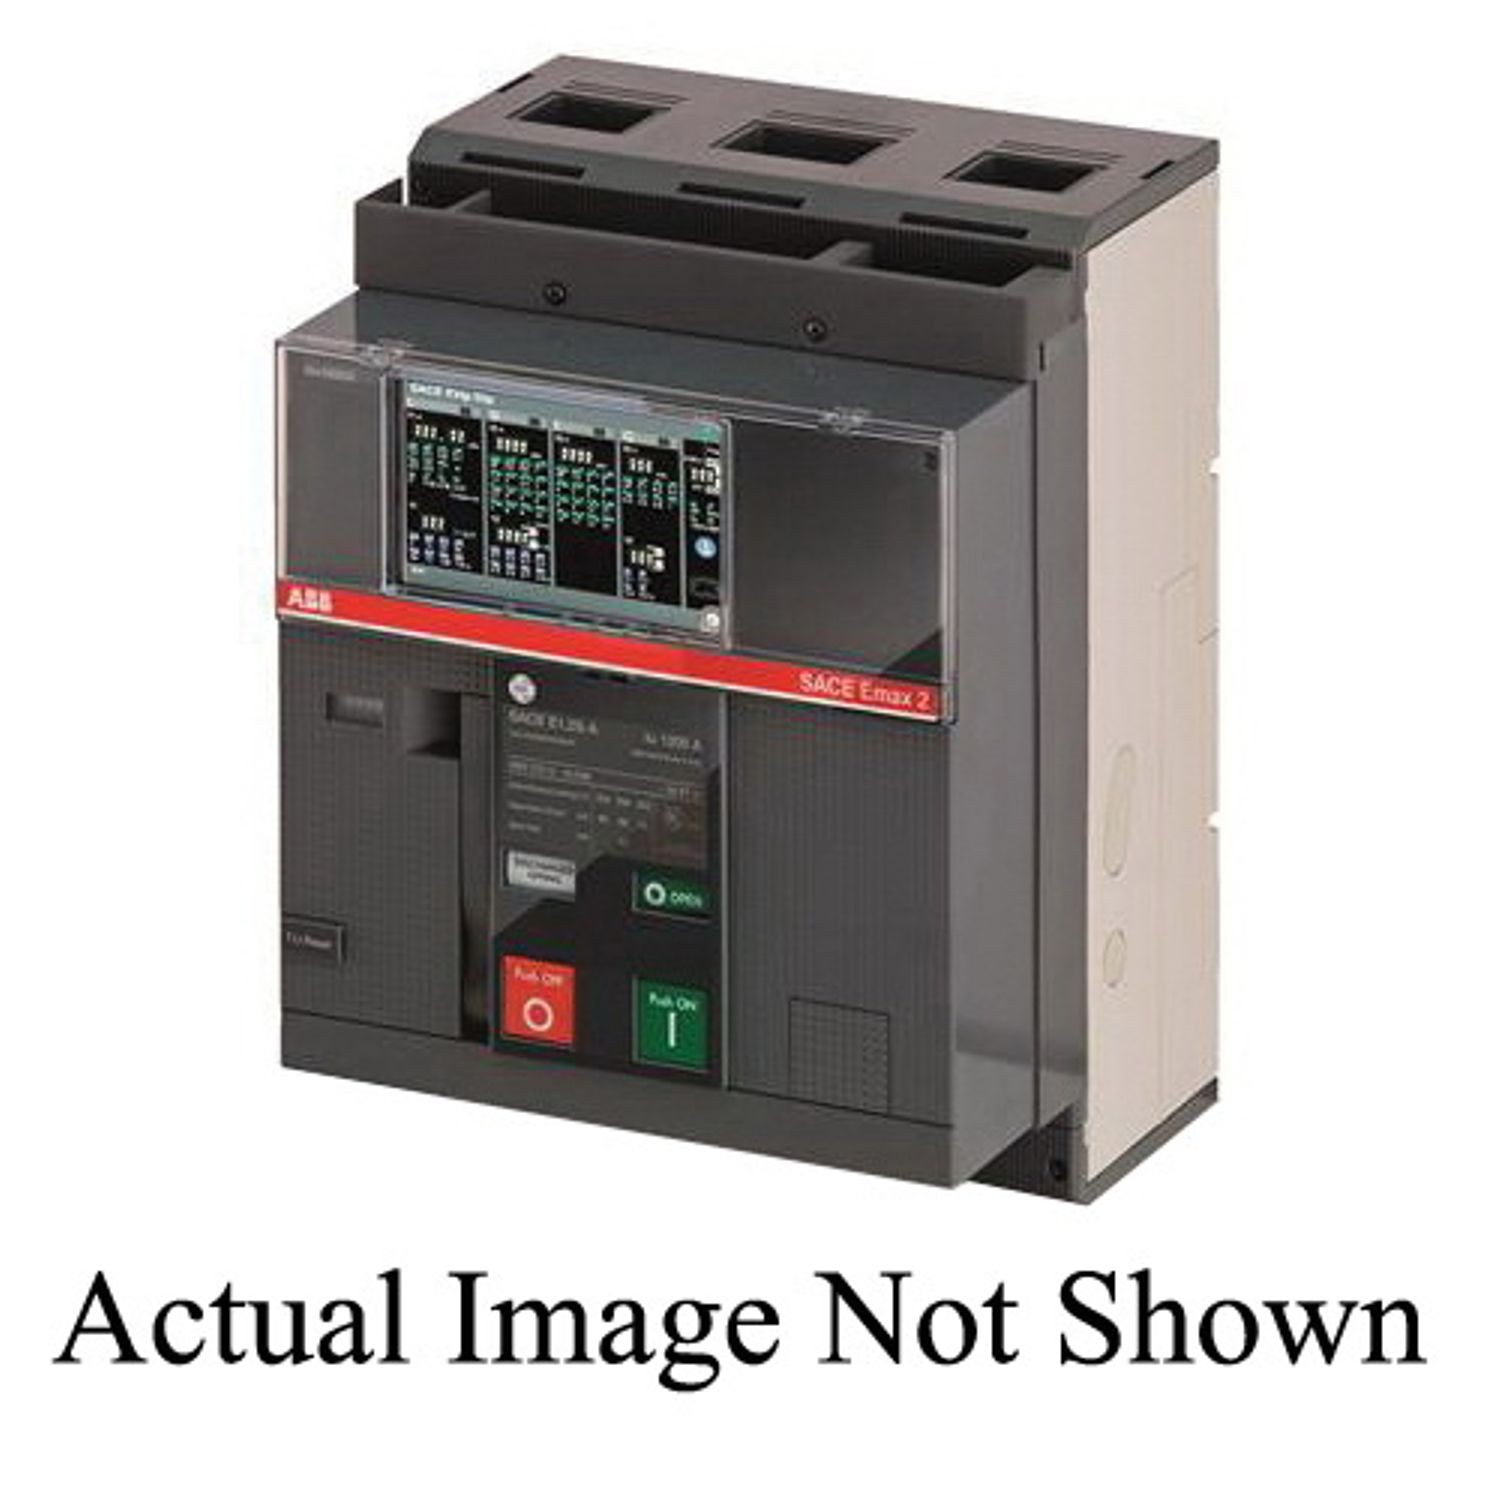 Abb Z1sduhajd00aheen4zxa Type Wmp Automatic Low Voltage Air Circuit Series High Withstand Tester Has Exclusive Smart Gfi Breaker With 4 Auxiliary Contacts 690 Vac 1200 A 65 Ka At 508 3 Poles